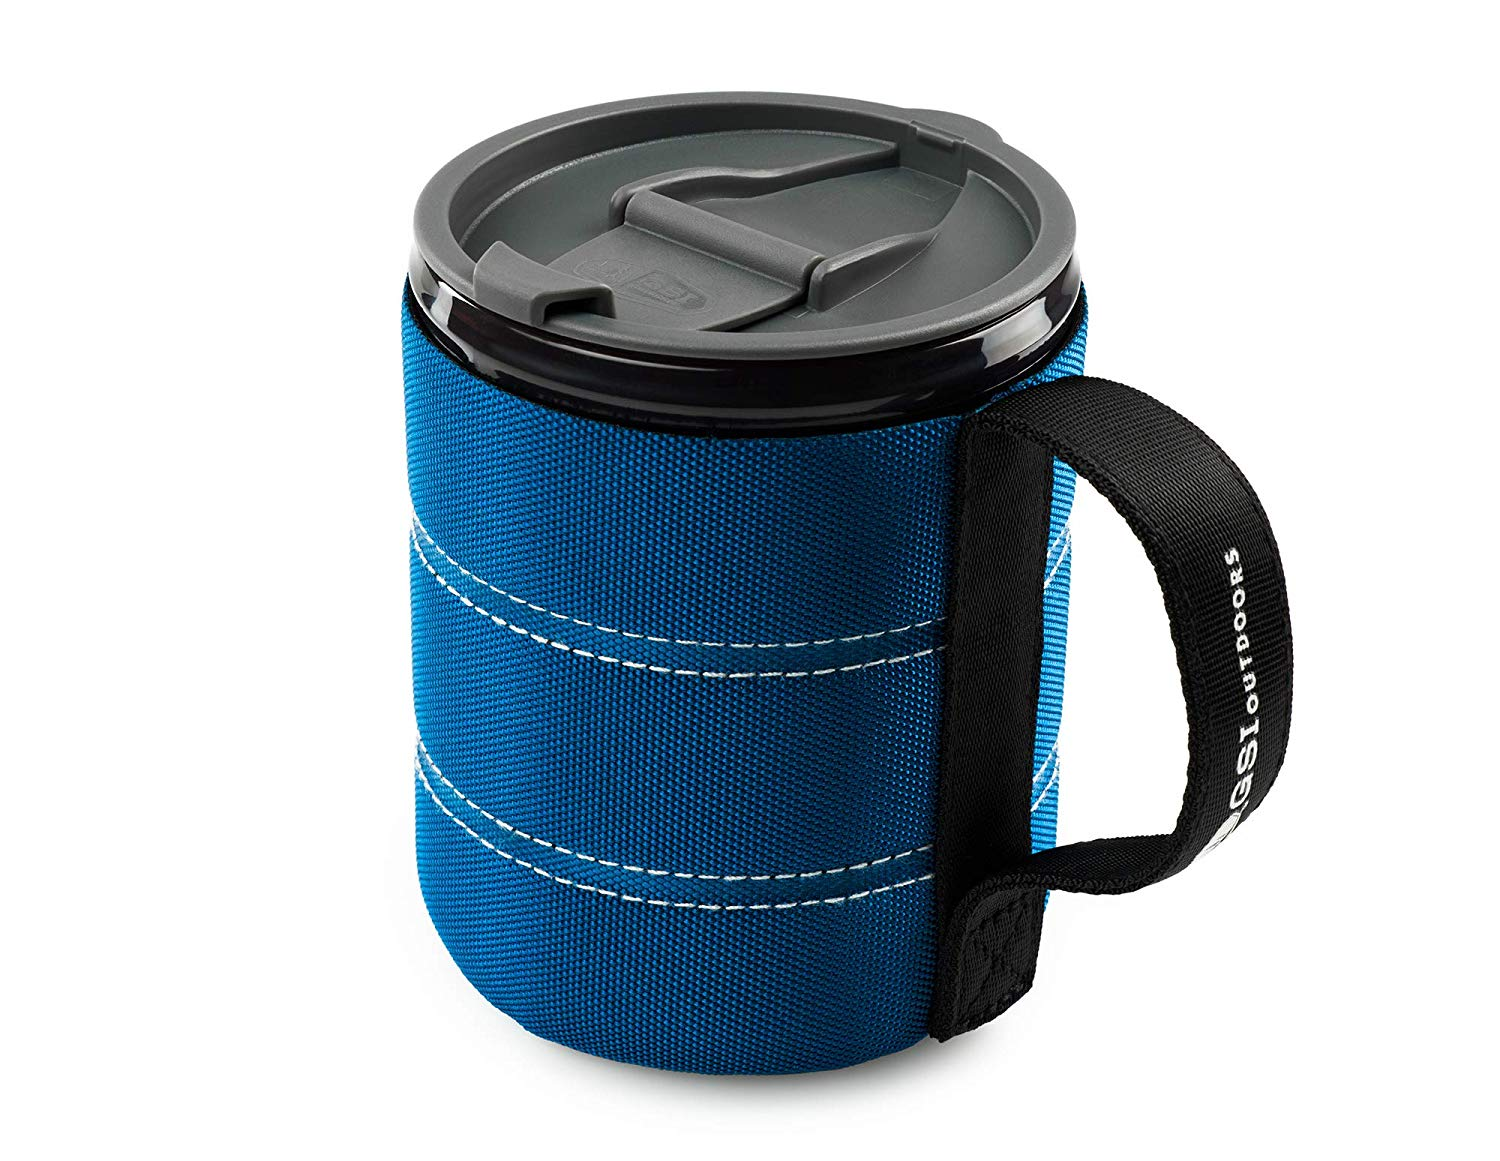 Backpackers: This Is the Only Coffee Mug You Need